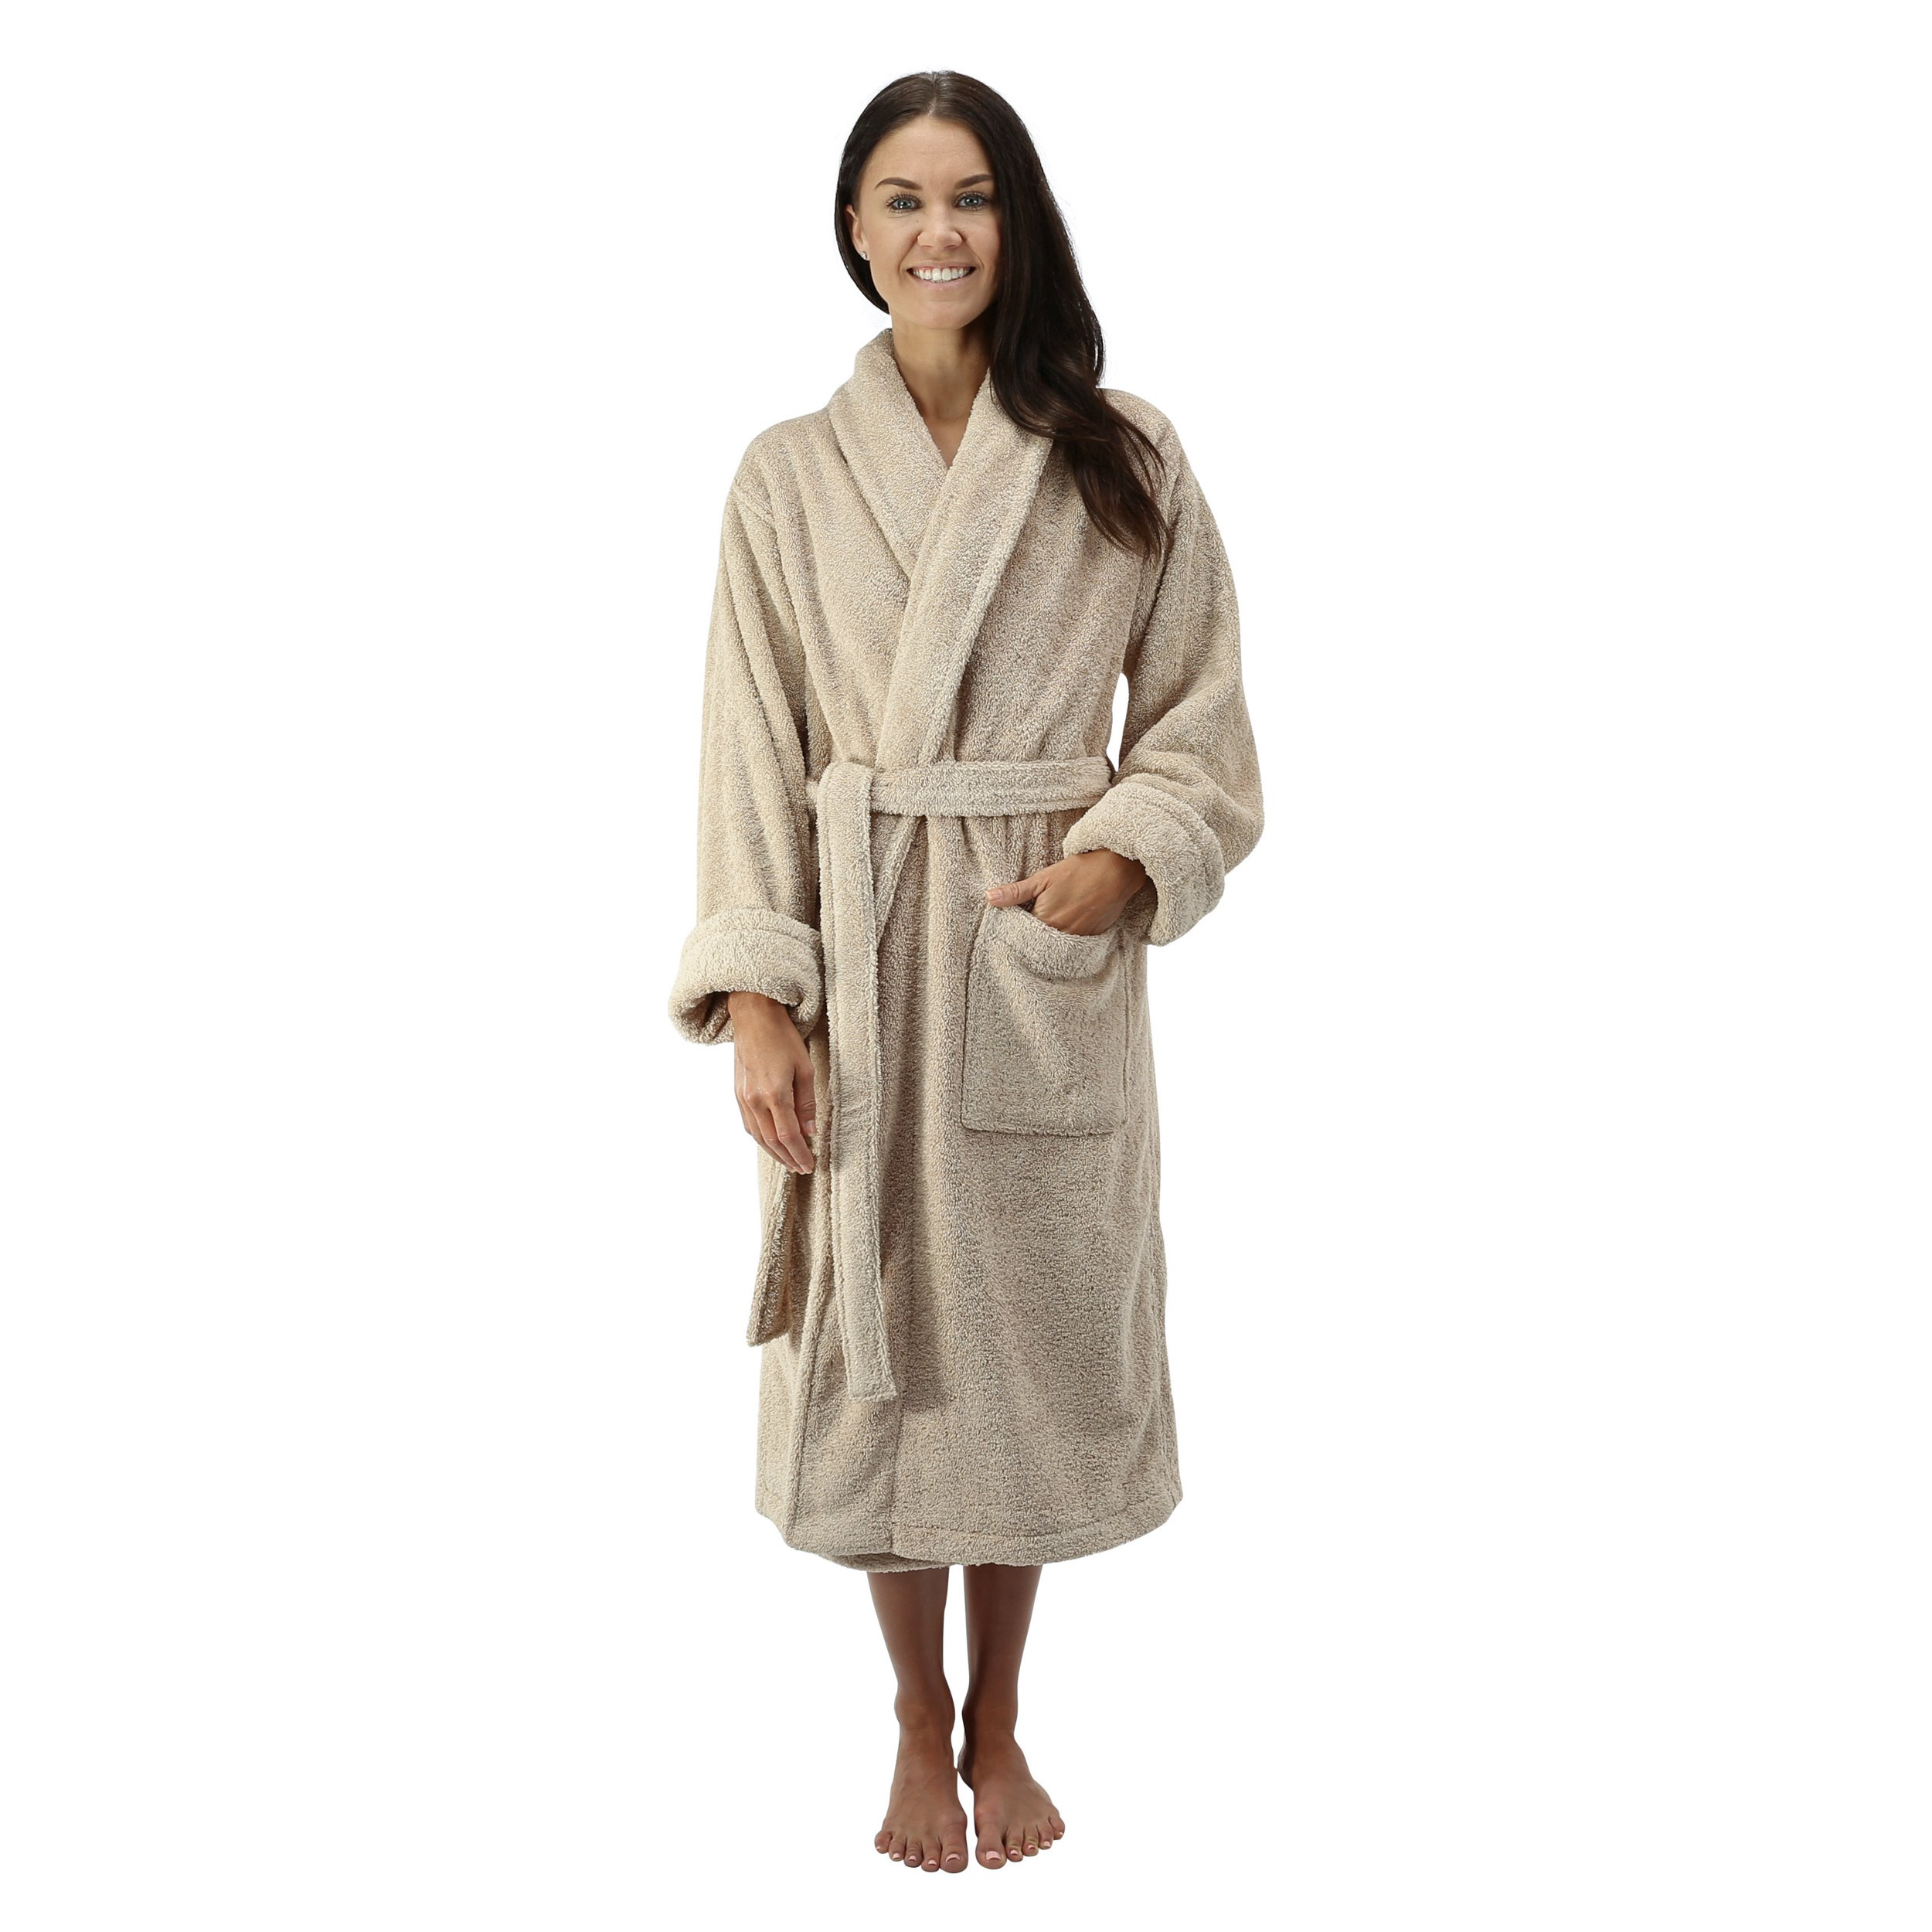 Comfy Robes Personalized Women's Deluxe 20 oz. Turkish Terry Bathrobe, XS Beige by Comfy Robes